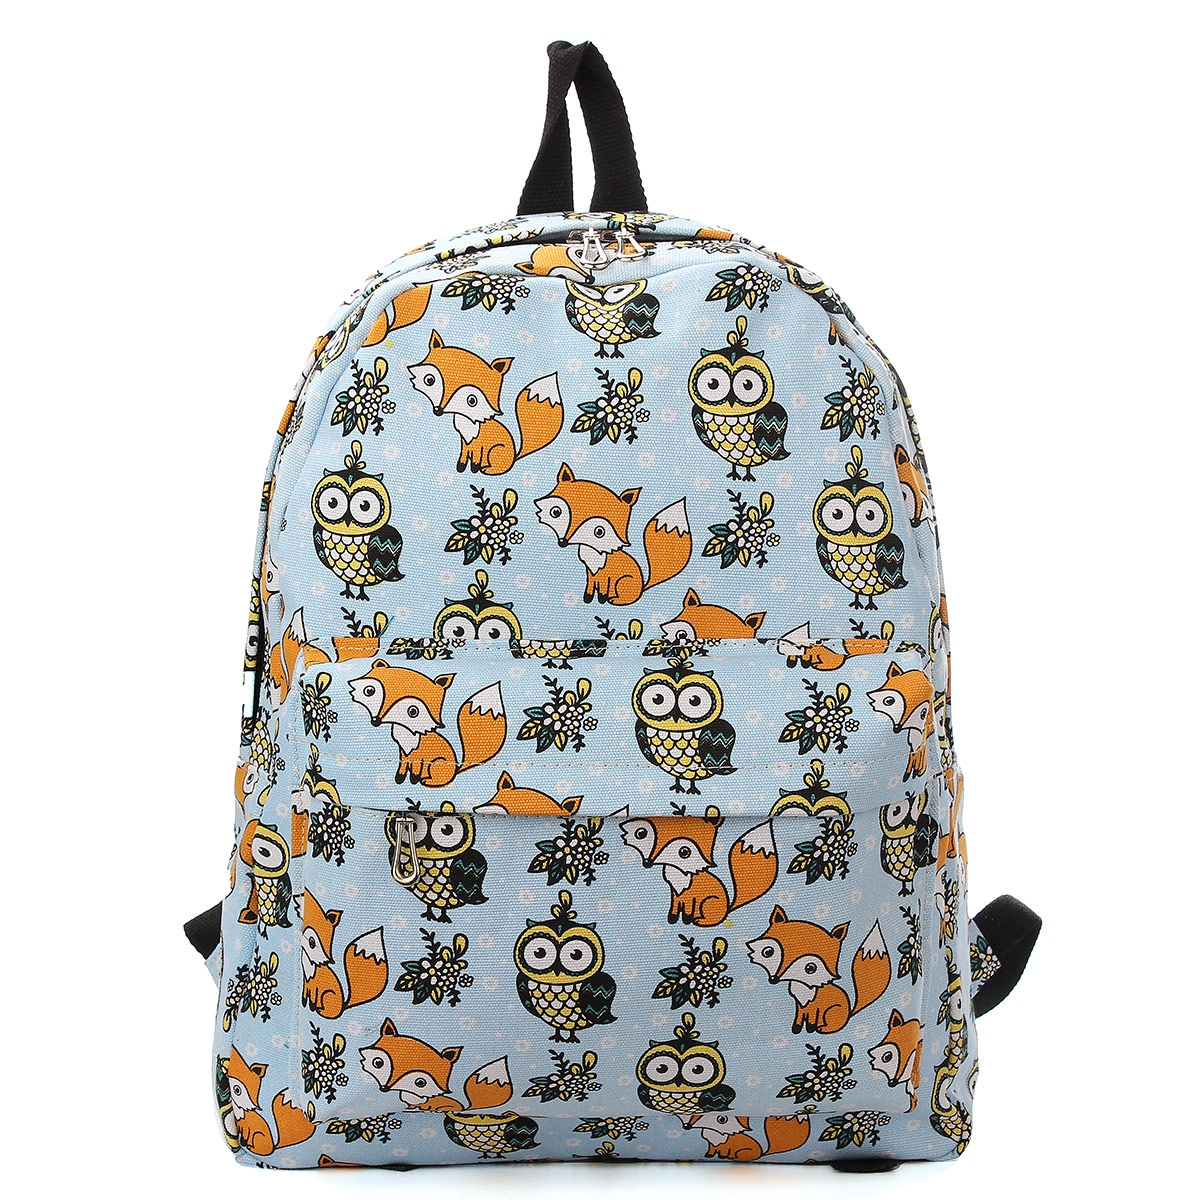 Owl Fox Backpack Canvas Animal Women Girl Satchel Shoulder